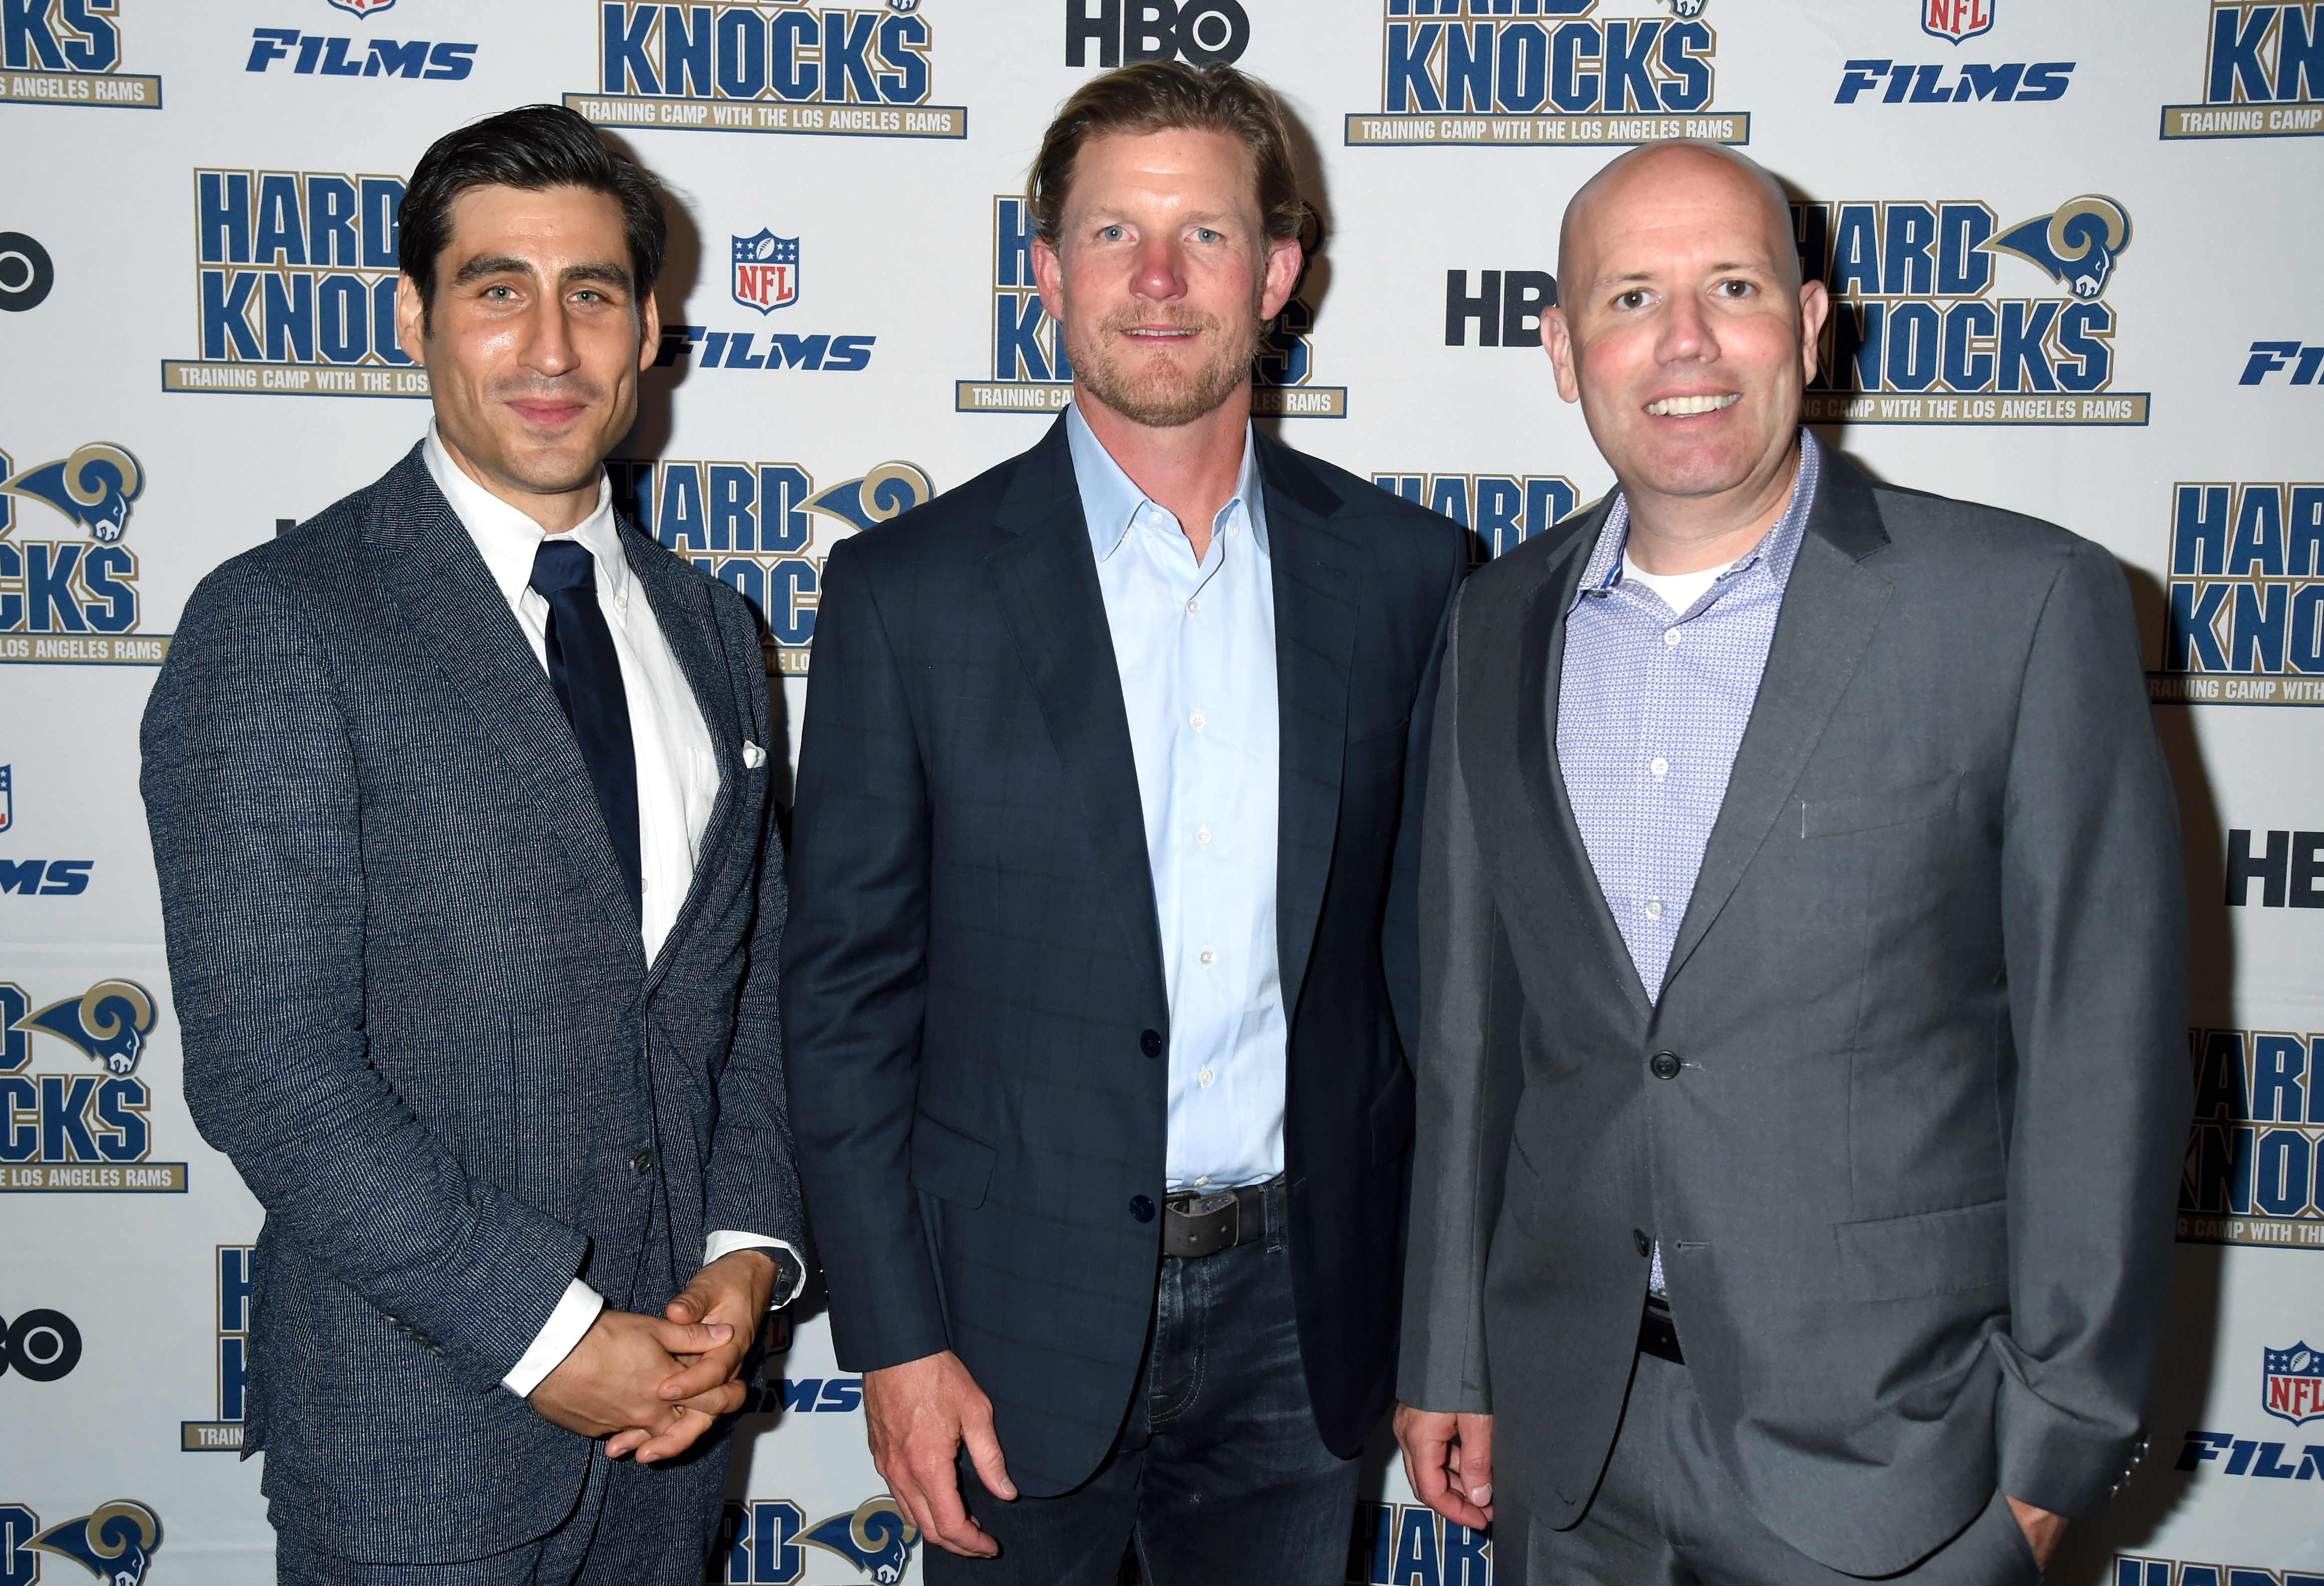 Hard Knocks Preview: A Season of Firsts Featuring the L.A. Rams